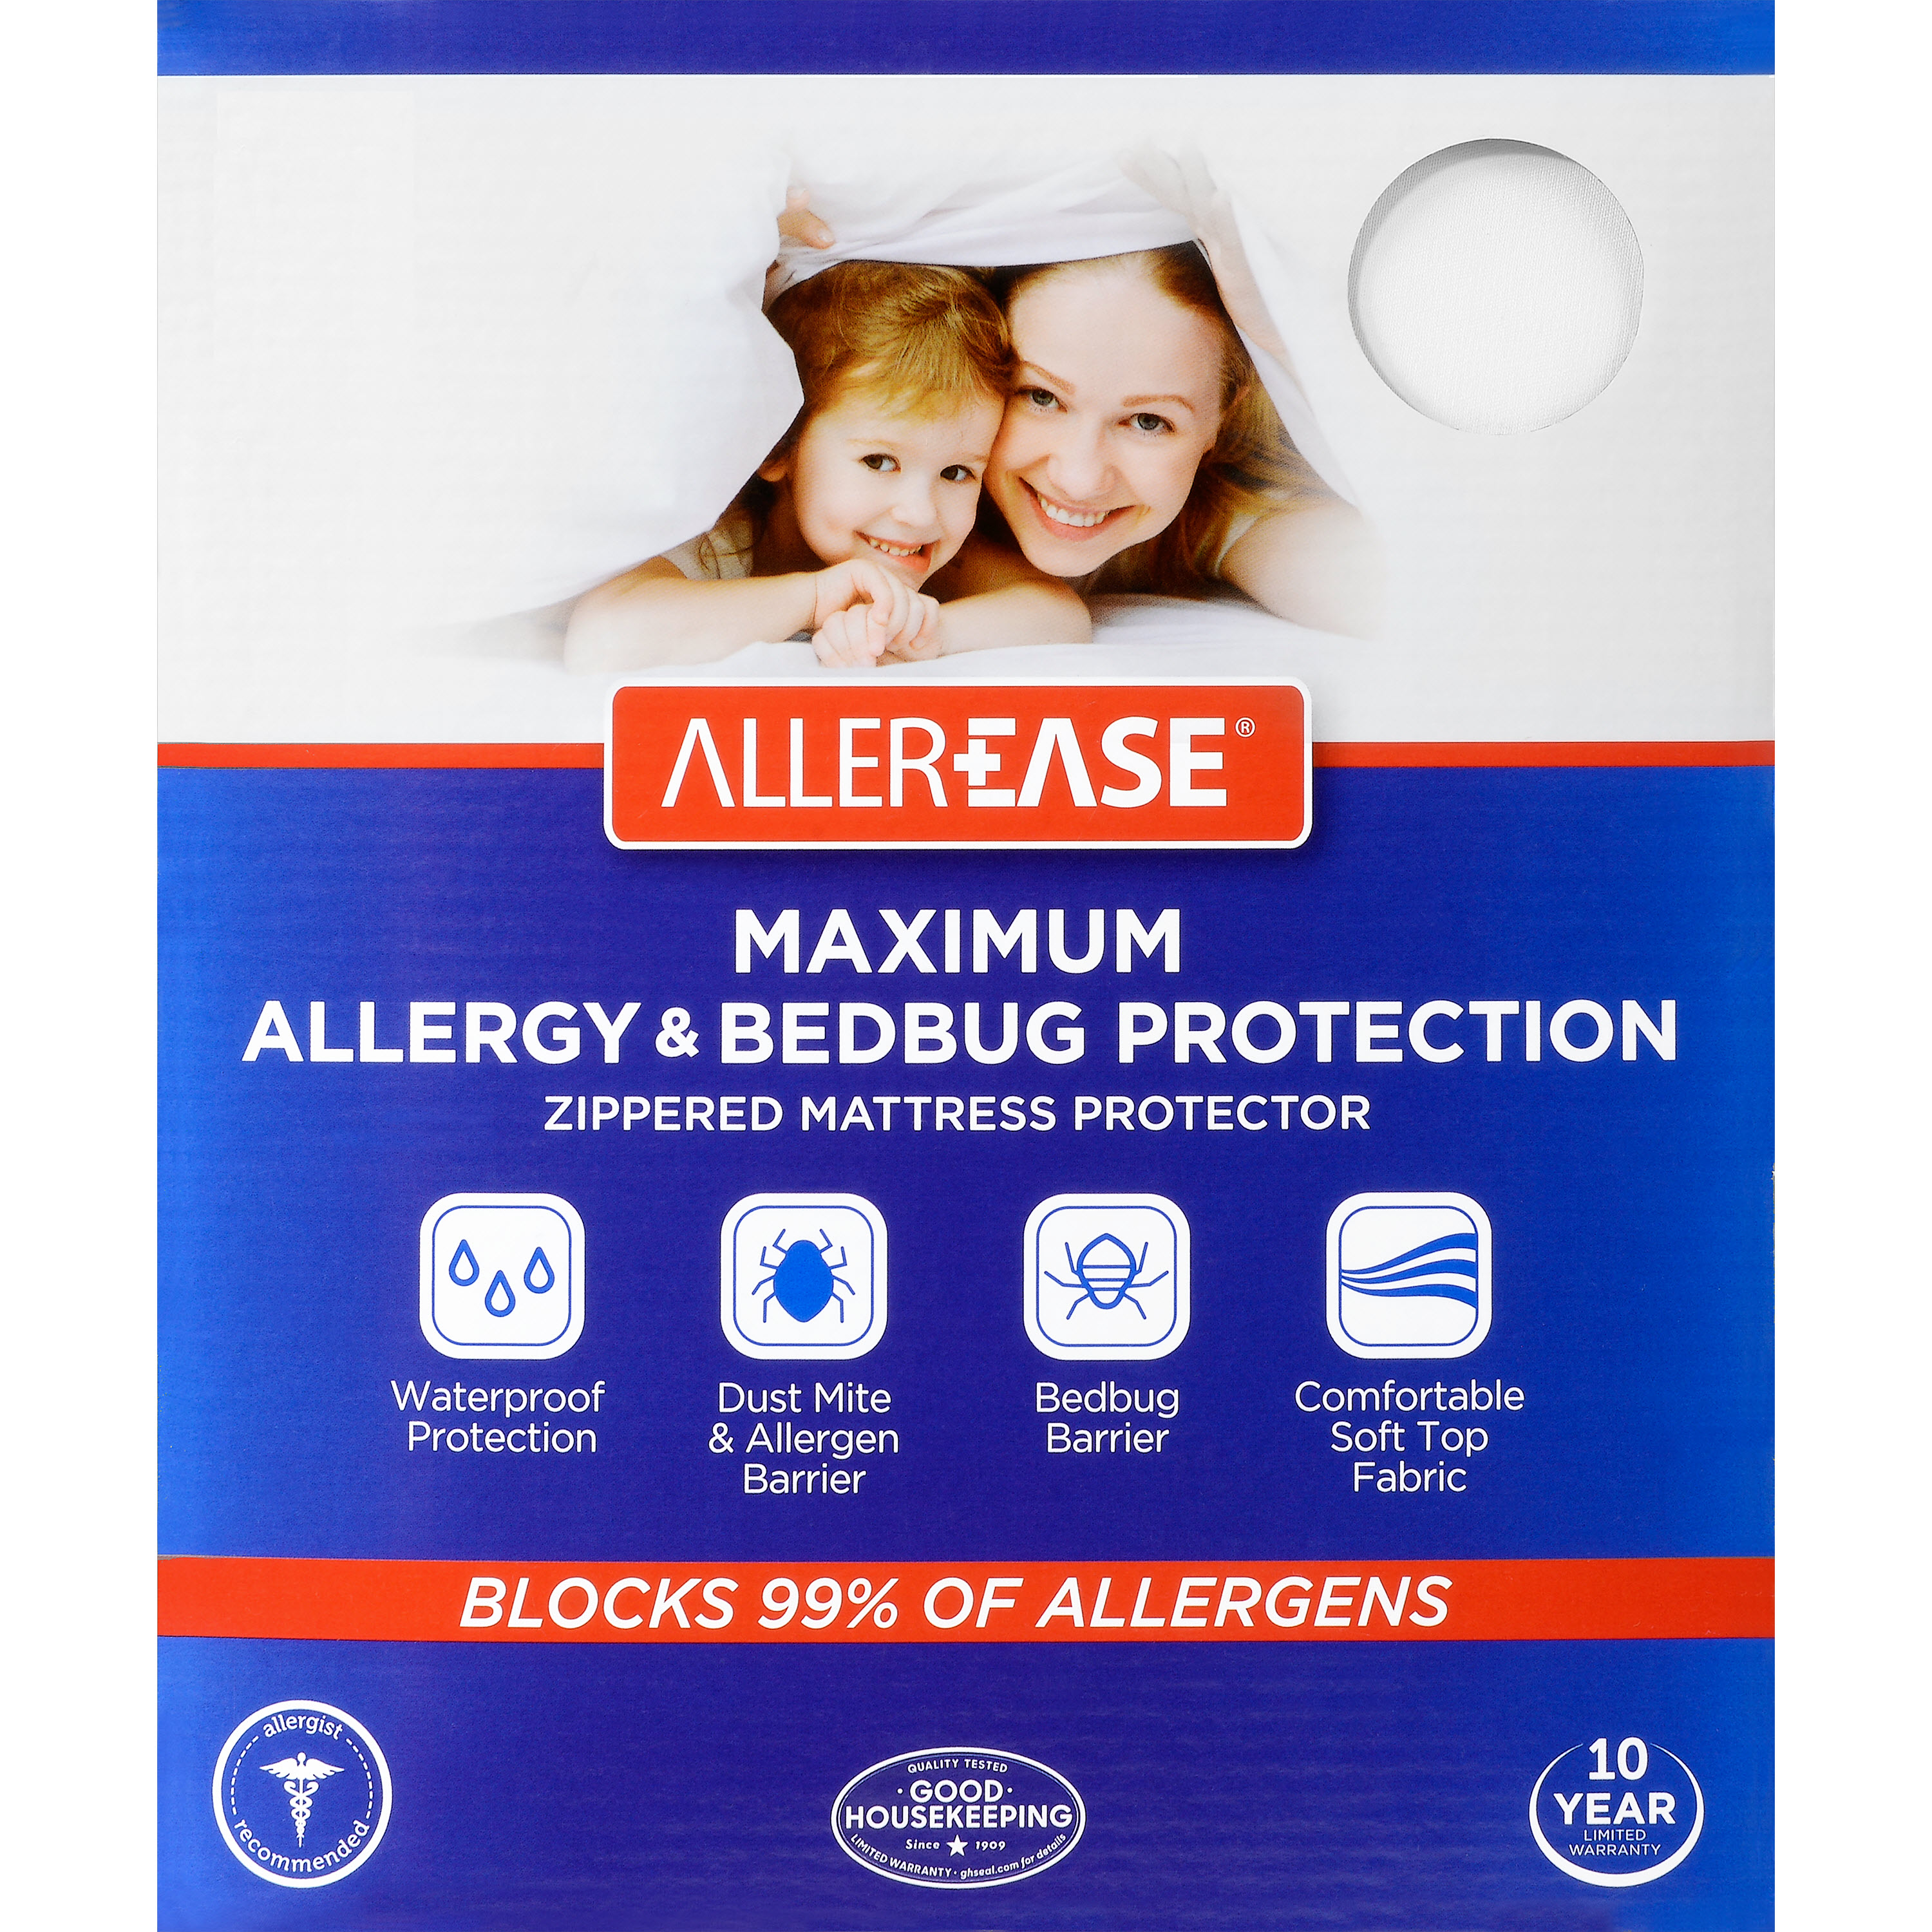 Aller Ease Maximum Allergy & Bed Bug Protection Zippered Mattress Protector by Aller Ease